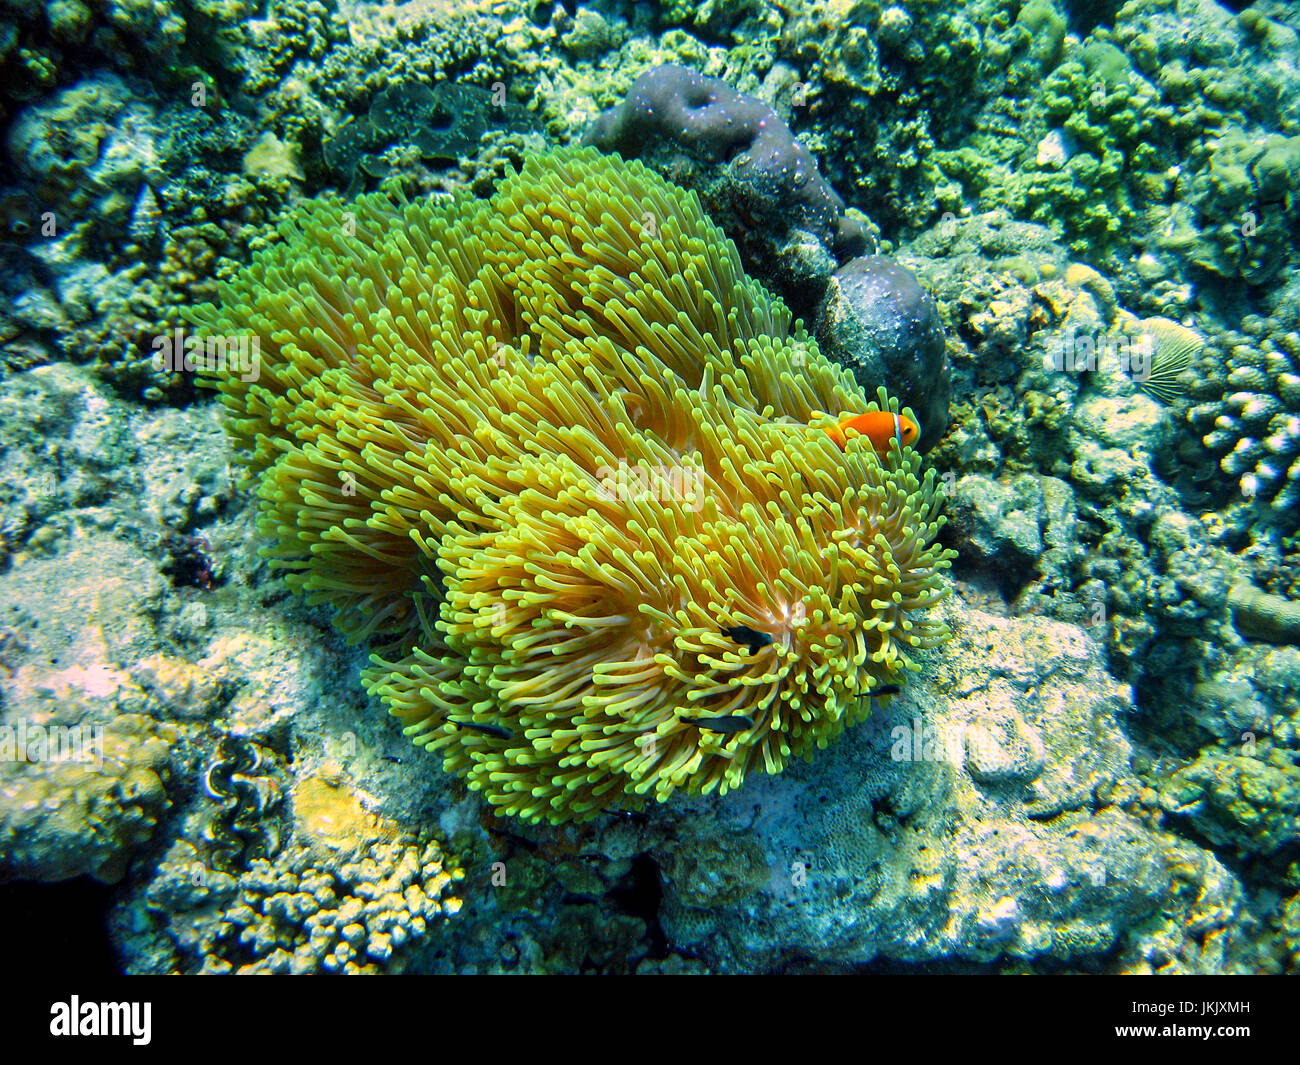 Clown fish living in an anemone. House reef of Helengeli Island, Maldives. Underwater photography. - Stock Image